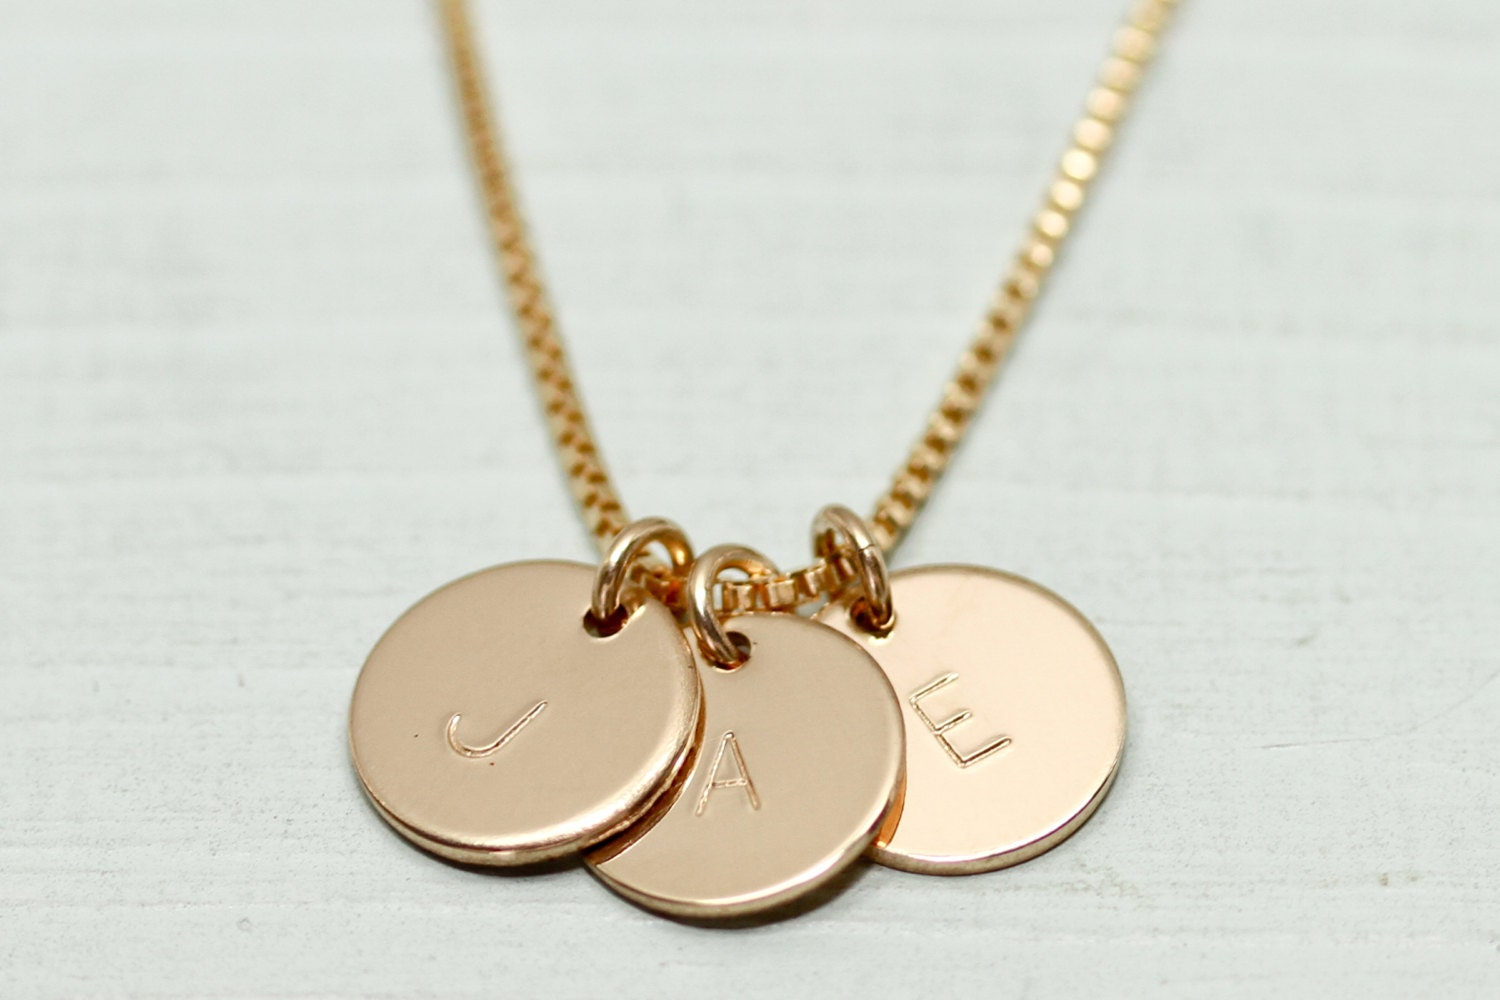 gold disc necklace dainty gold necklace initial necklace. Black Bedroom Furniture Sets. Home Design Ideas